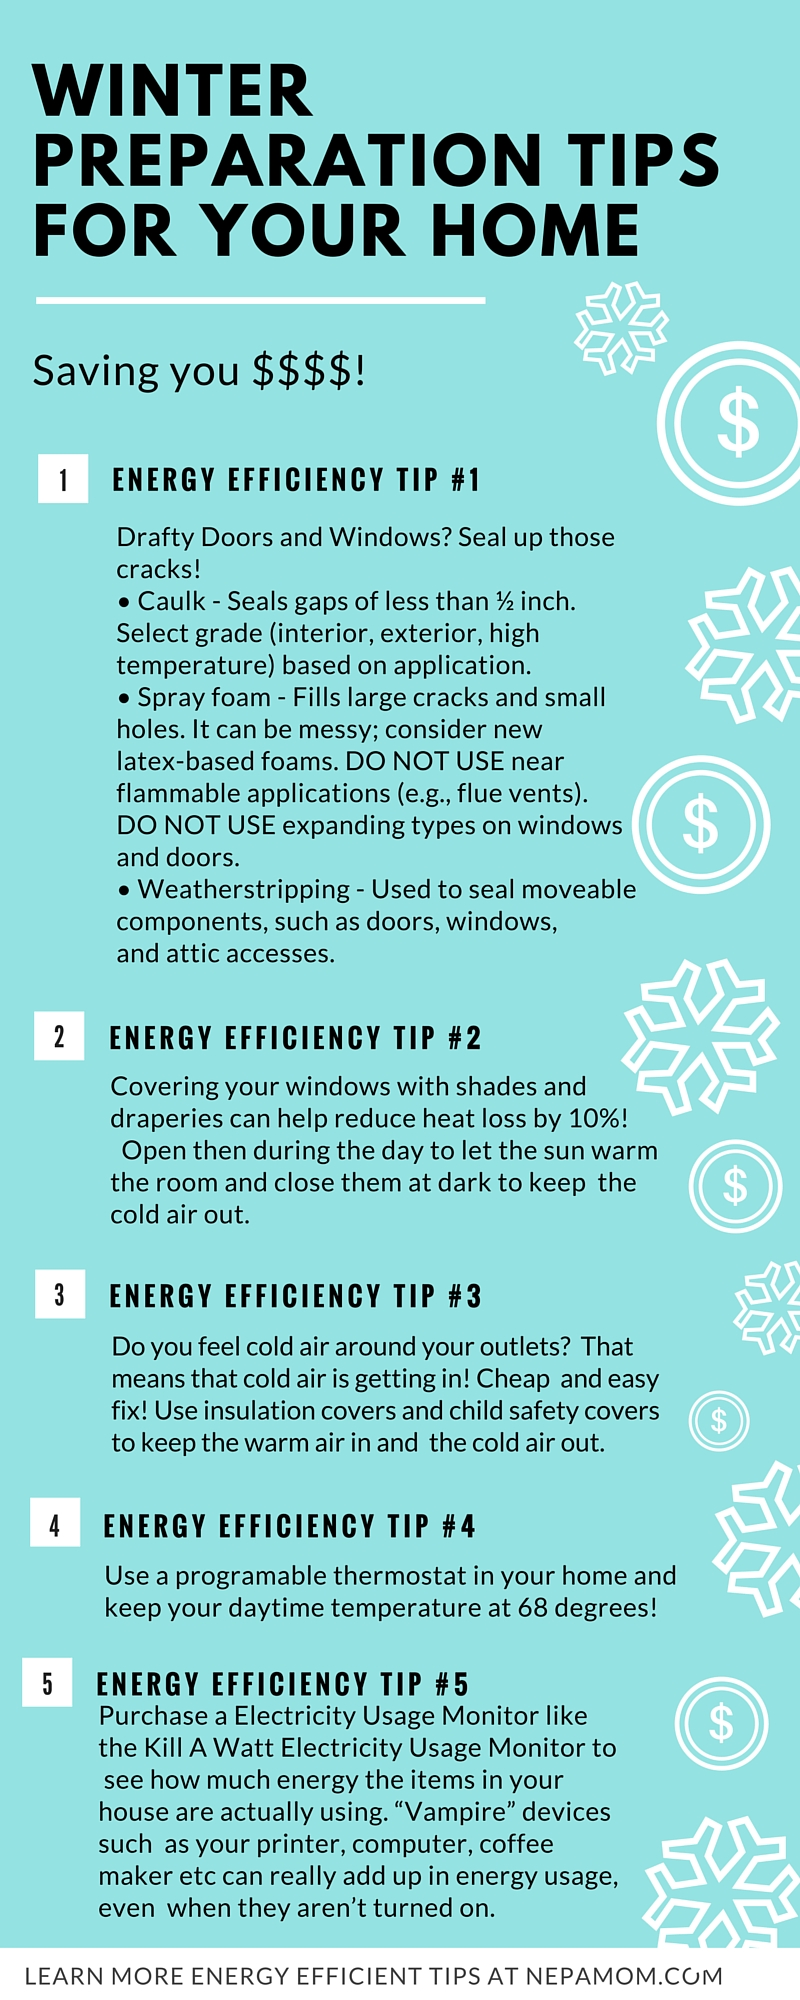 Marvelous Winter Preparation Tips For Your Home (1) Images